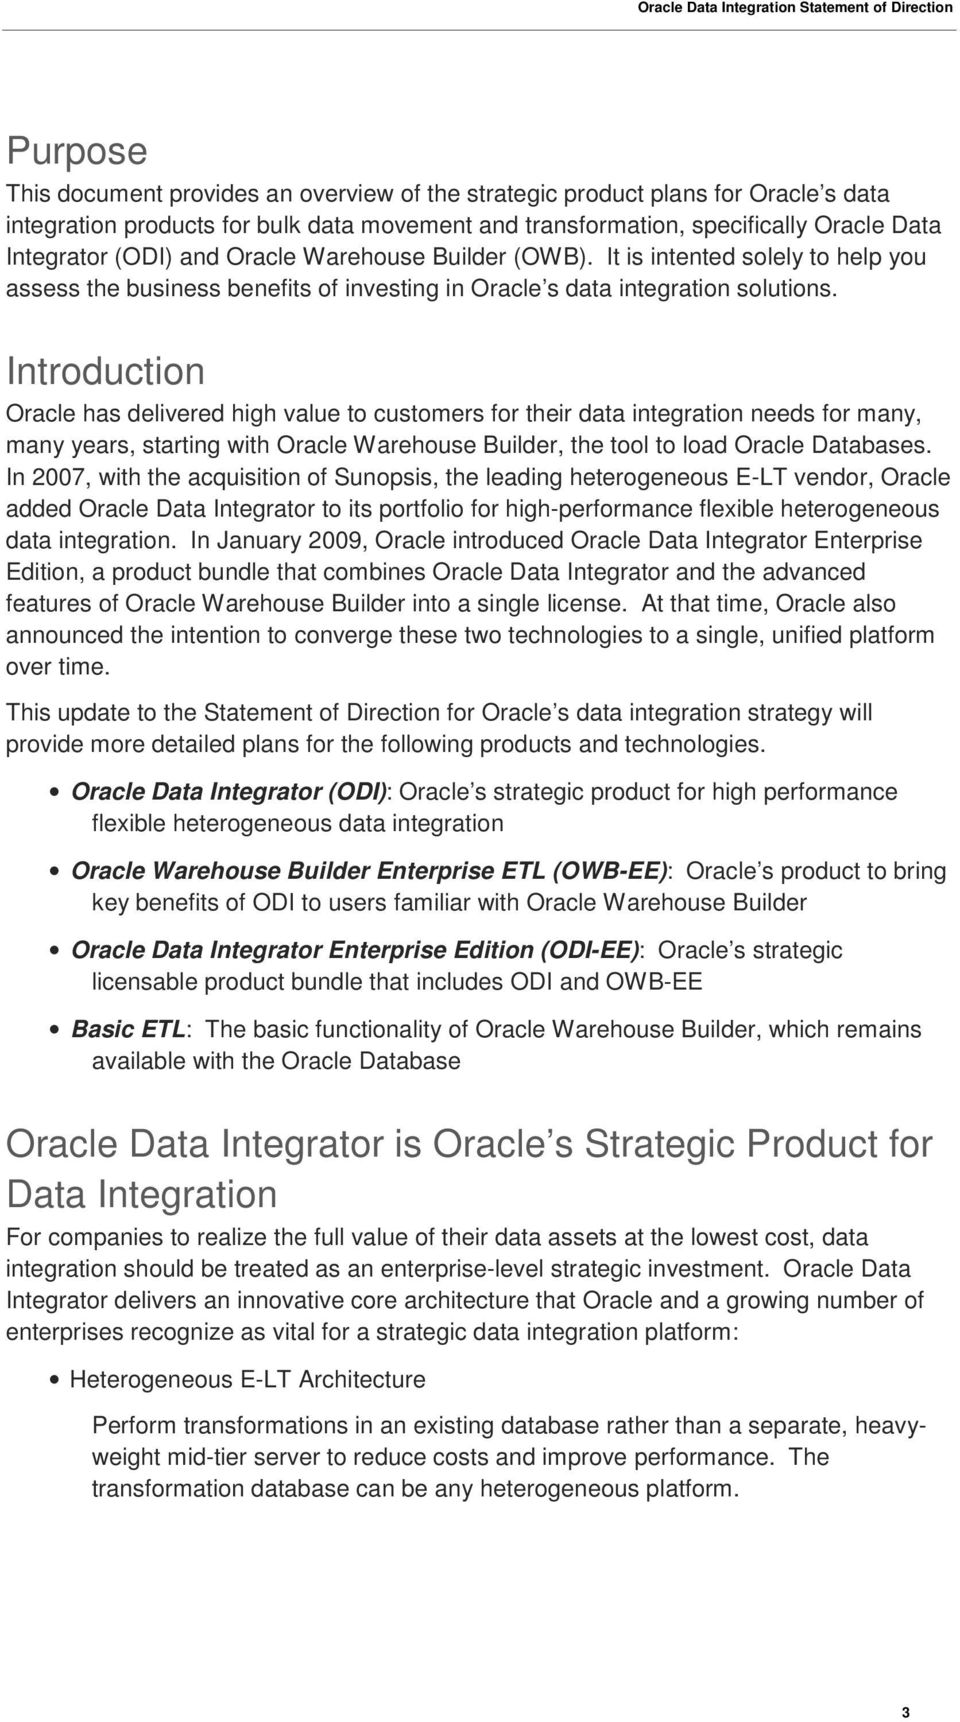 Introduction Oracle has delivered high value to customers for their data integration needs for many, many years, starting with Oracle Warehouse Builder, the tool to load Oracle Databases.